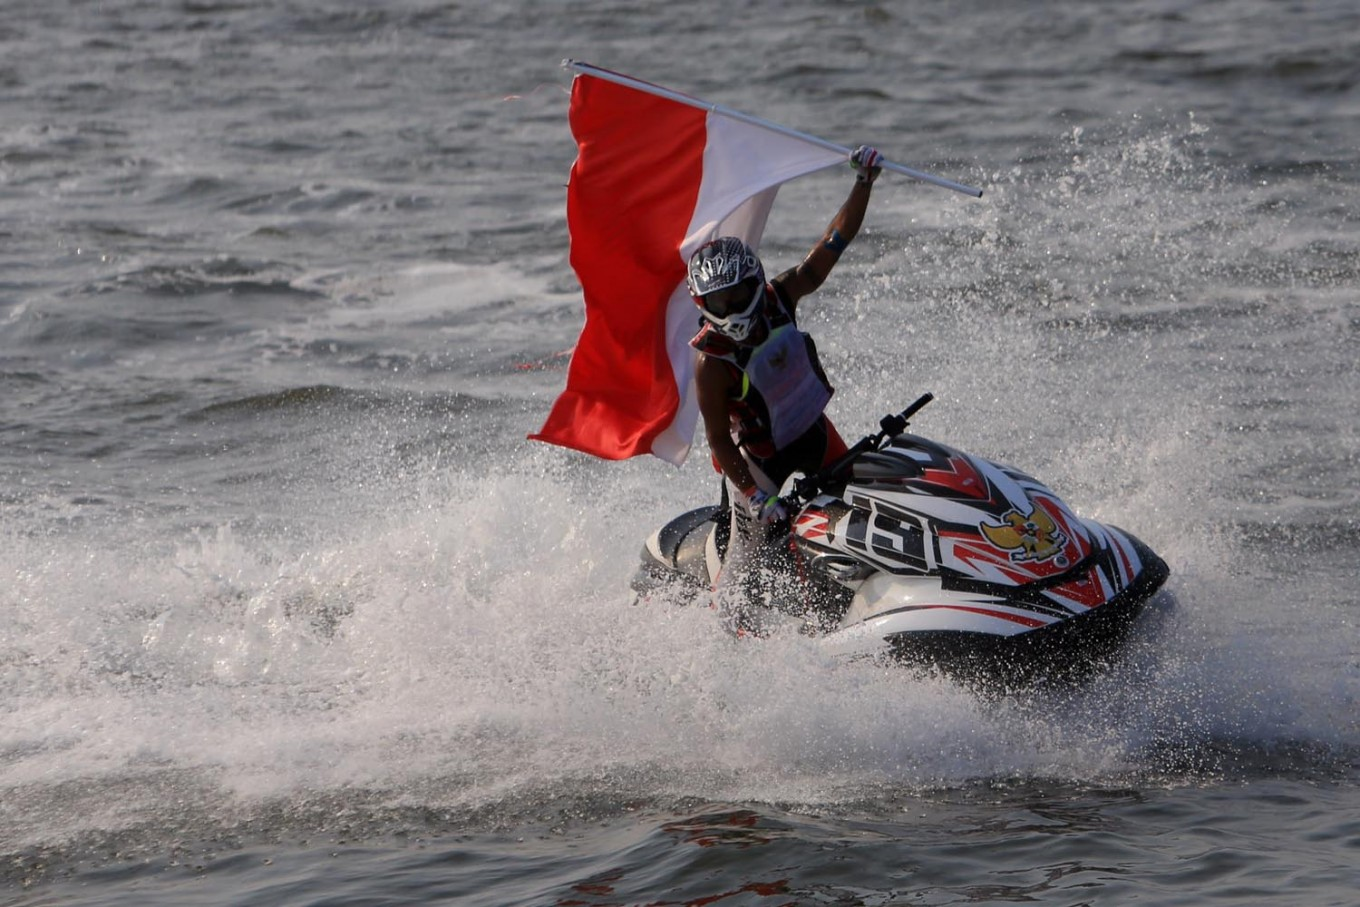 Asian Games: Aqsa clinches gold for Indonesia in jetski